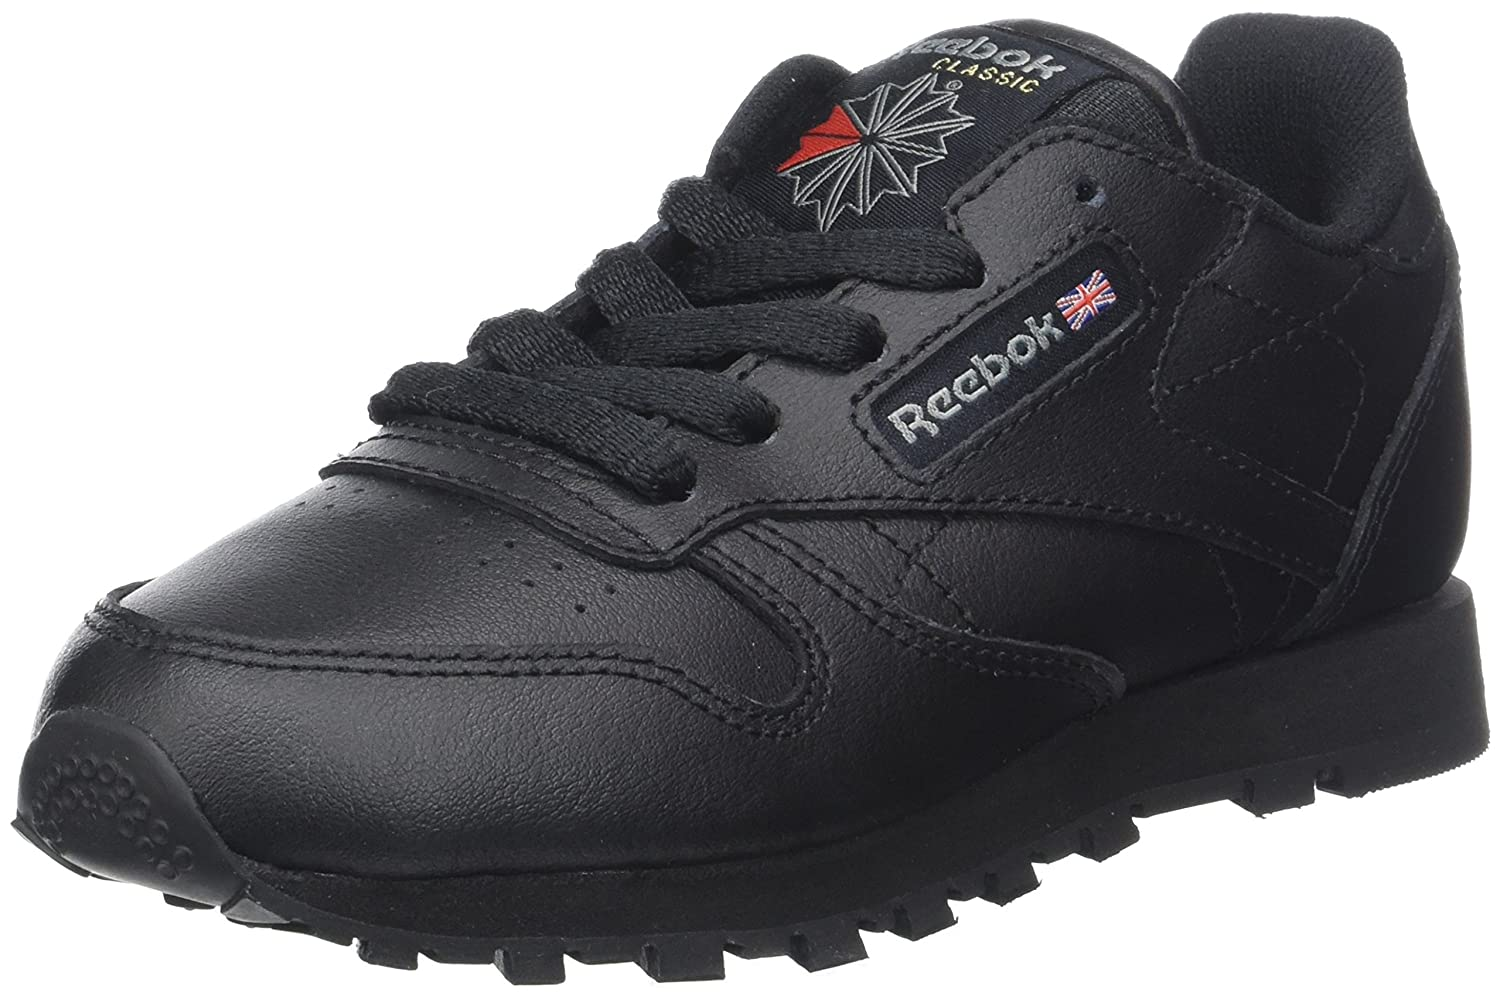 Reebok Classic Leather Zapatillas de Trail Running Unisex Niños